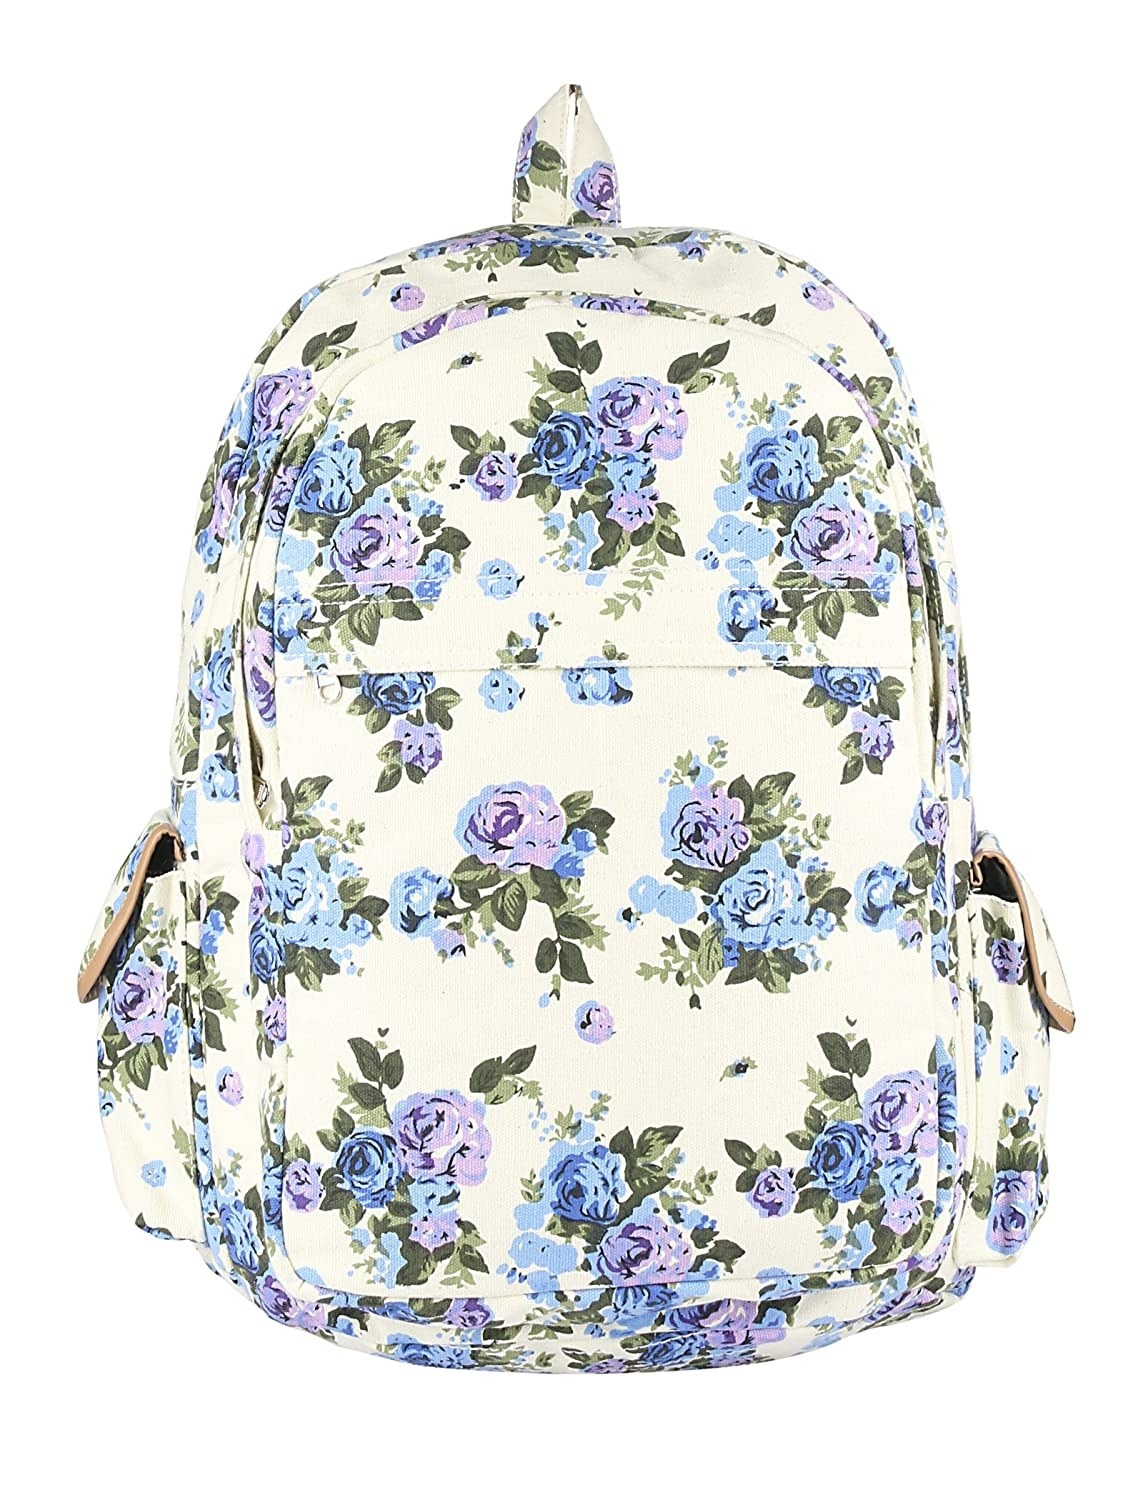 A white backpack with a blue and lavender floral print